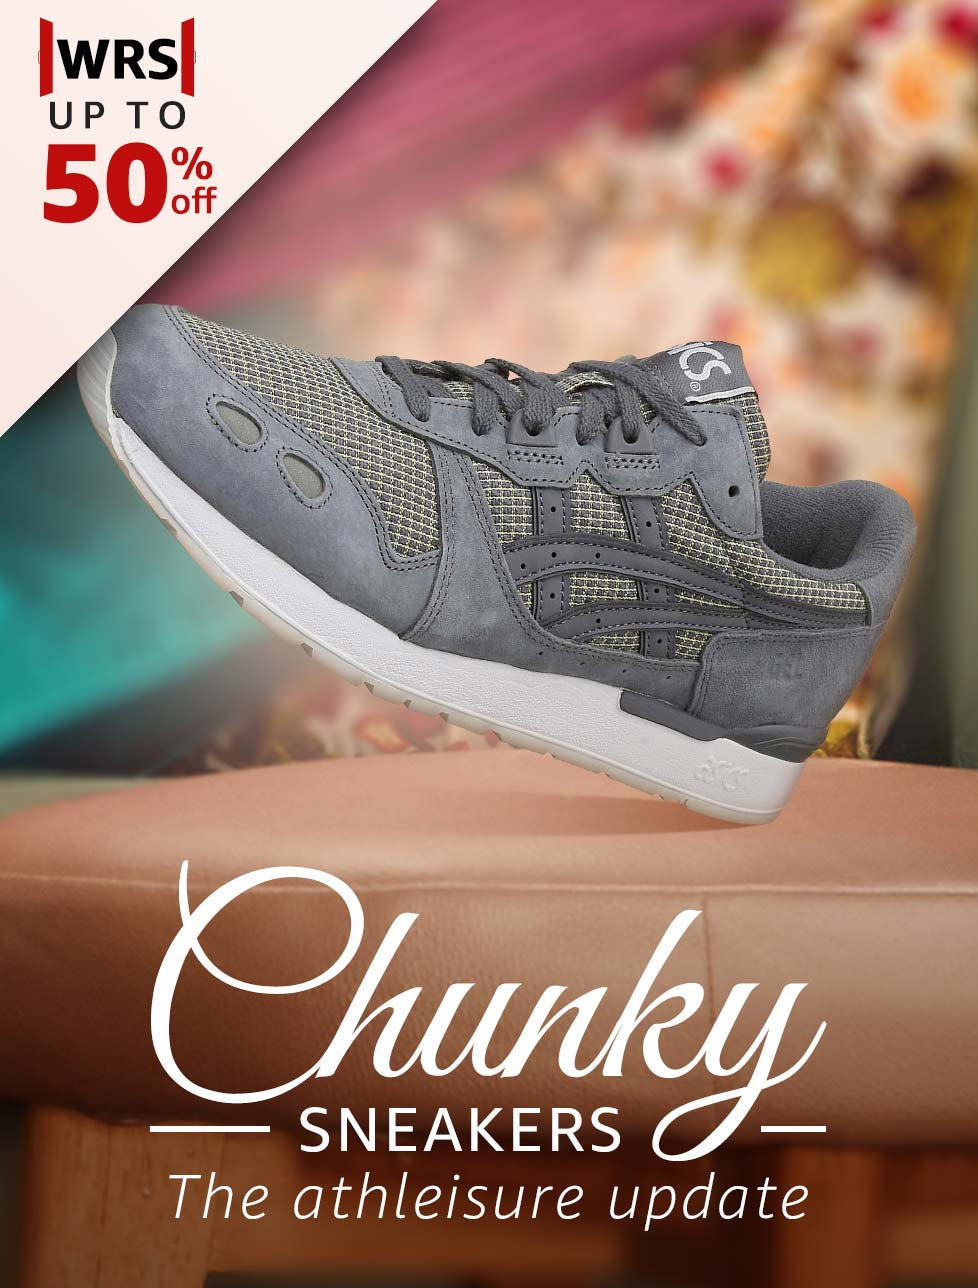 Chunky Sneakers the athleisure update